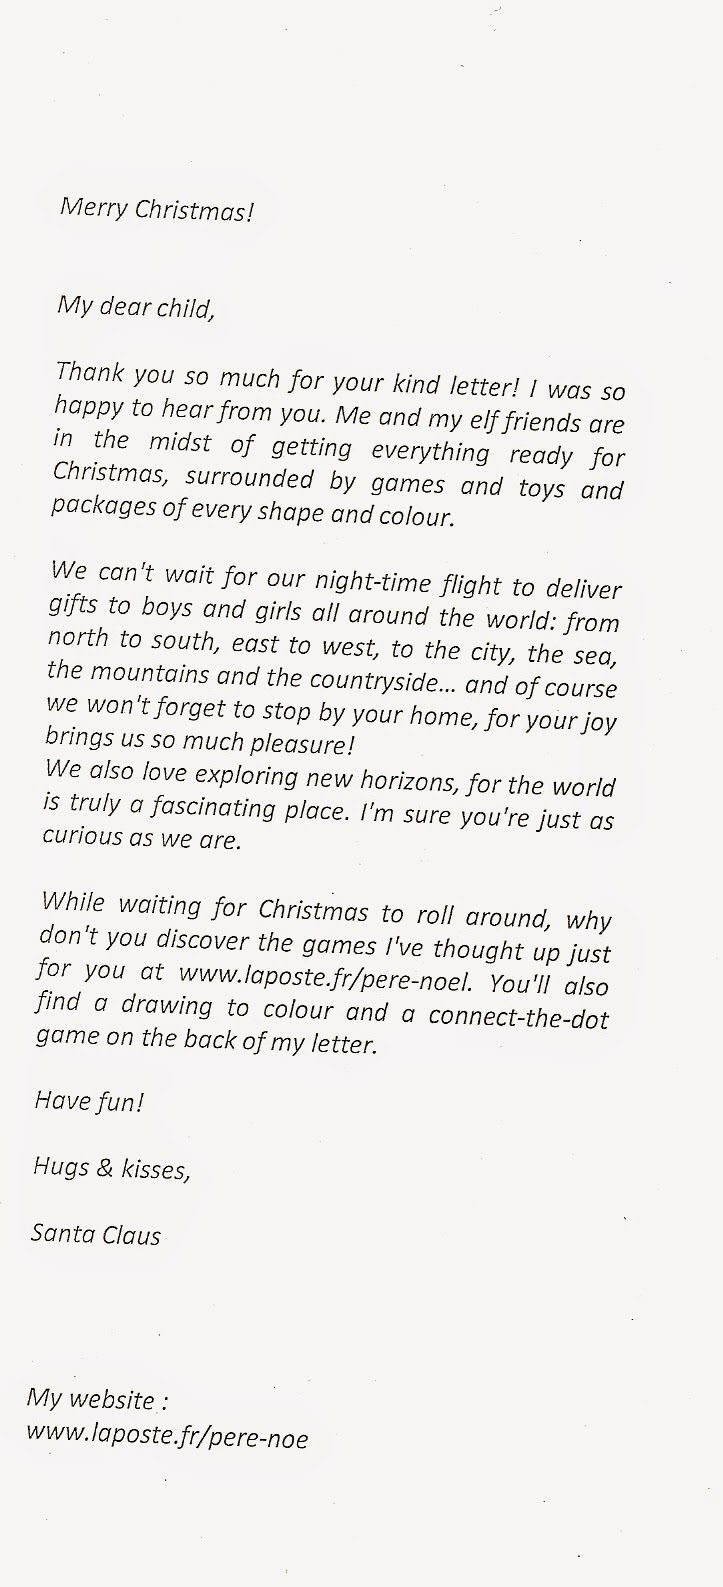 interesting corner of me christmas 2014 letter from santa claus